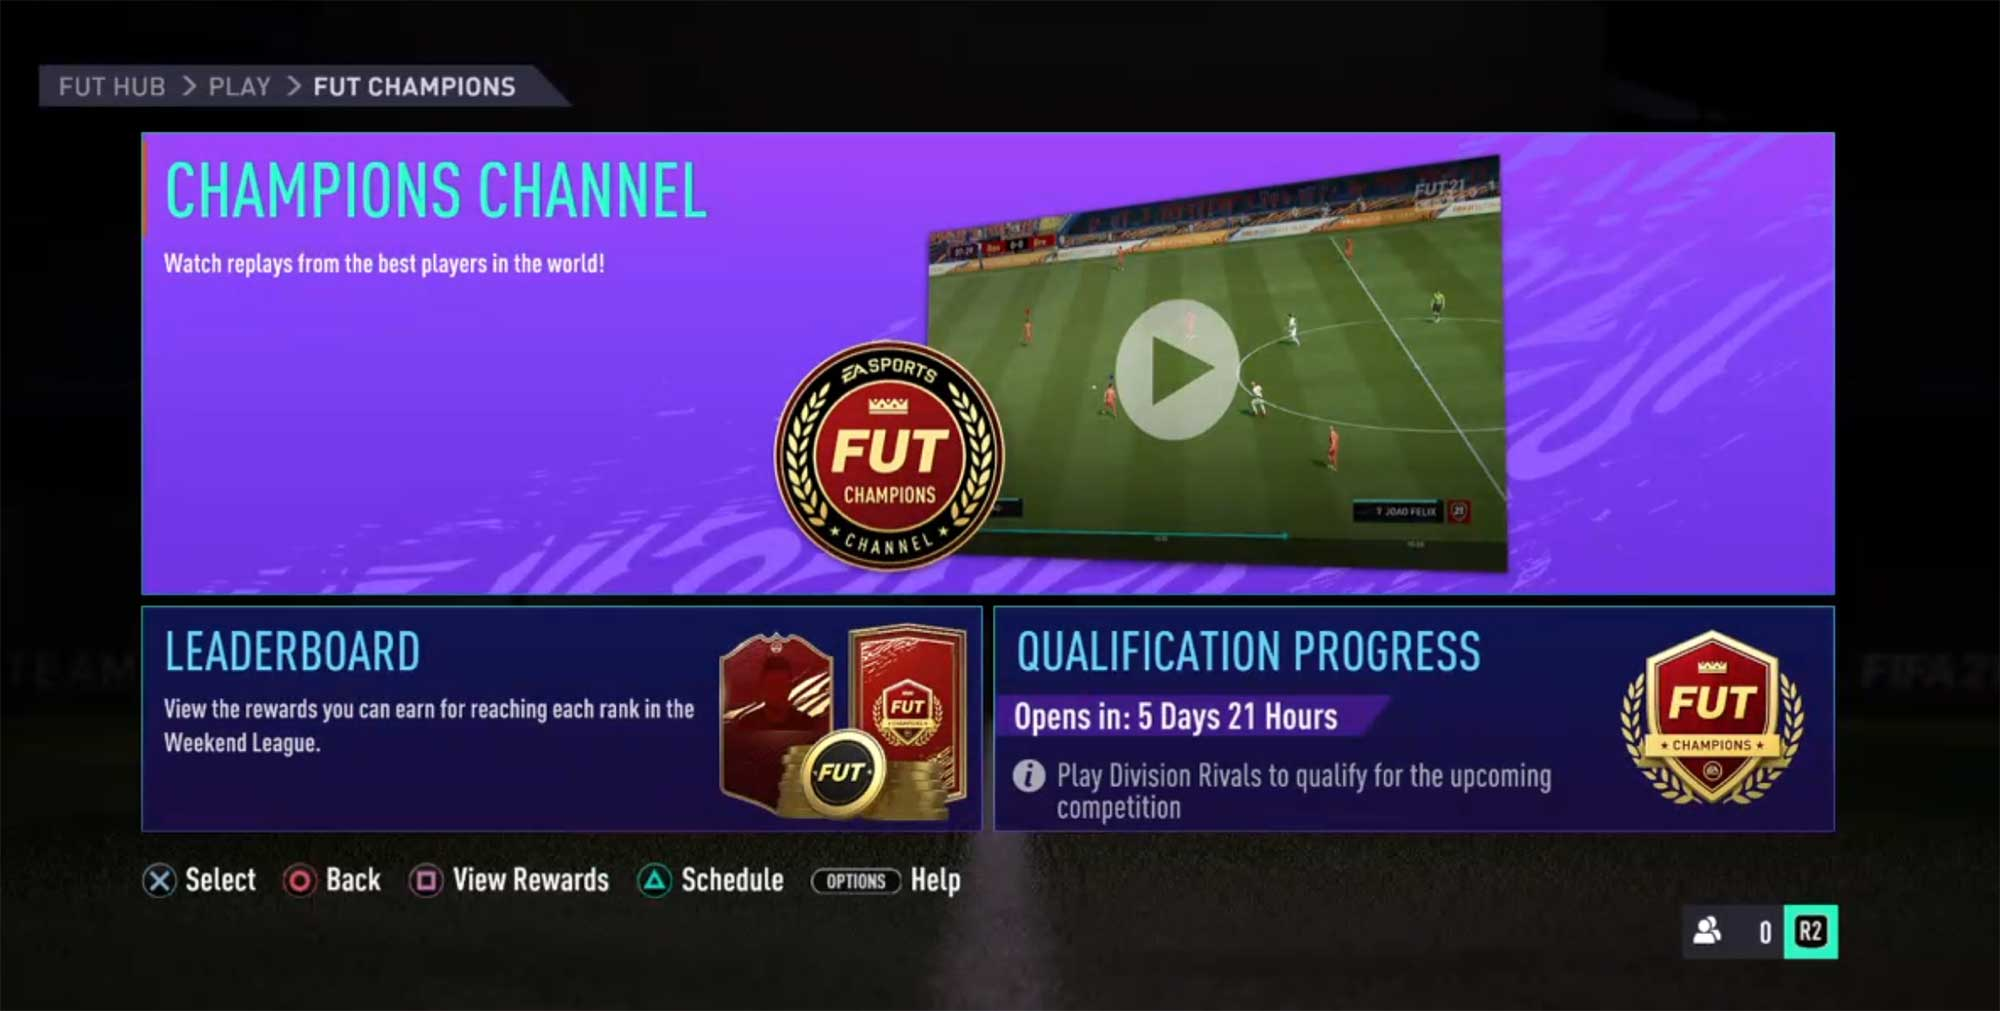 FUT Champions Channel Guide for FIFA 21